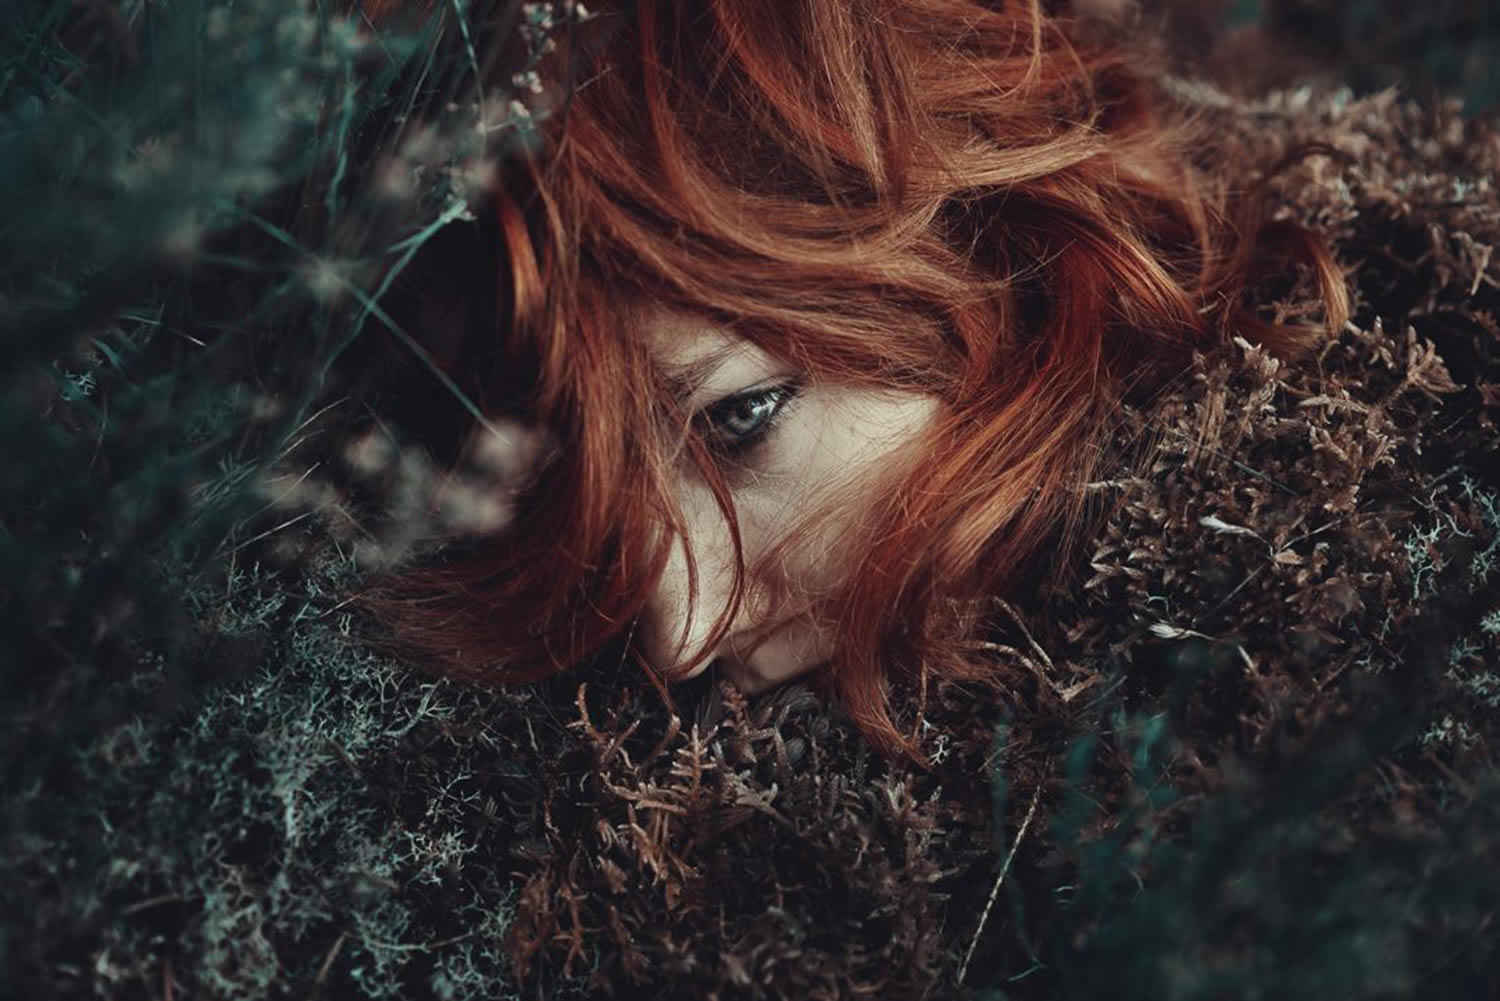 red hair woman lying in leaves